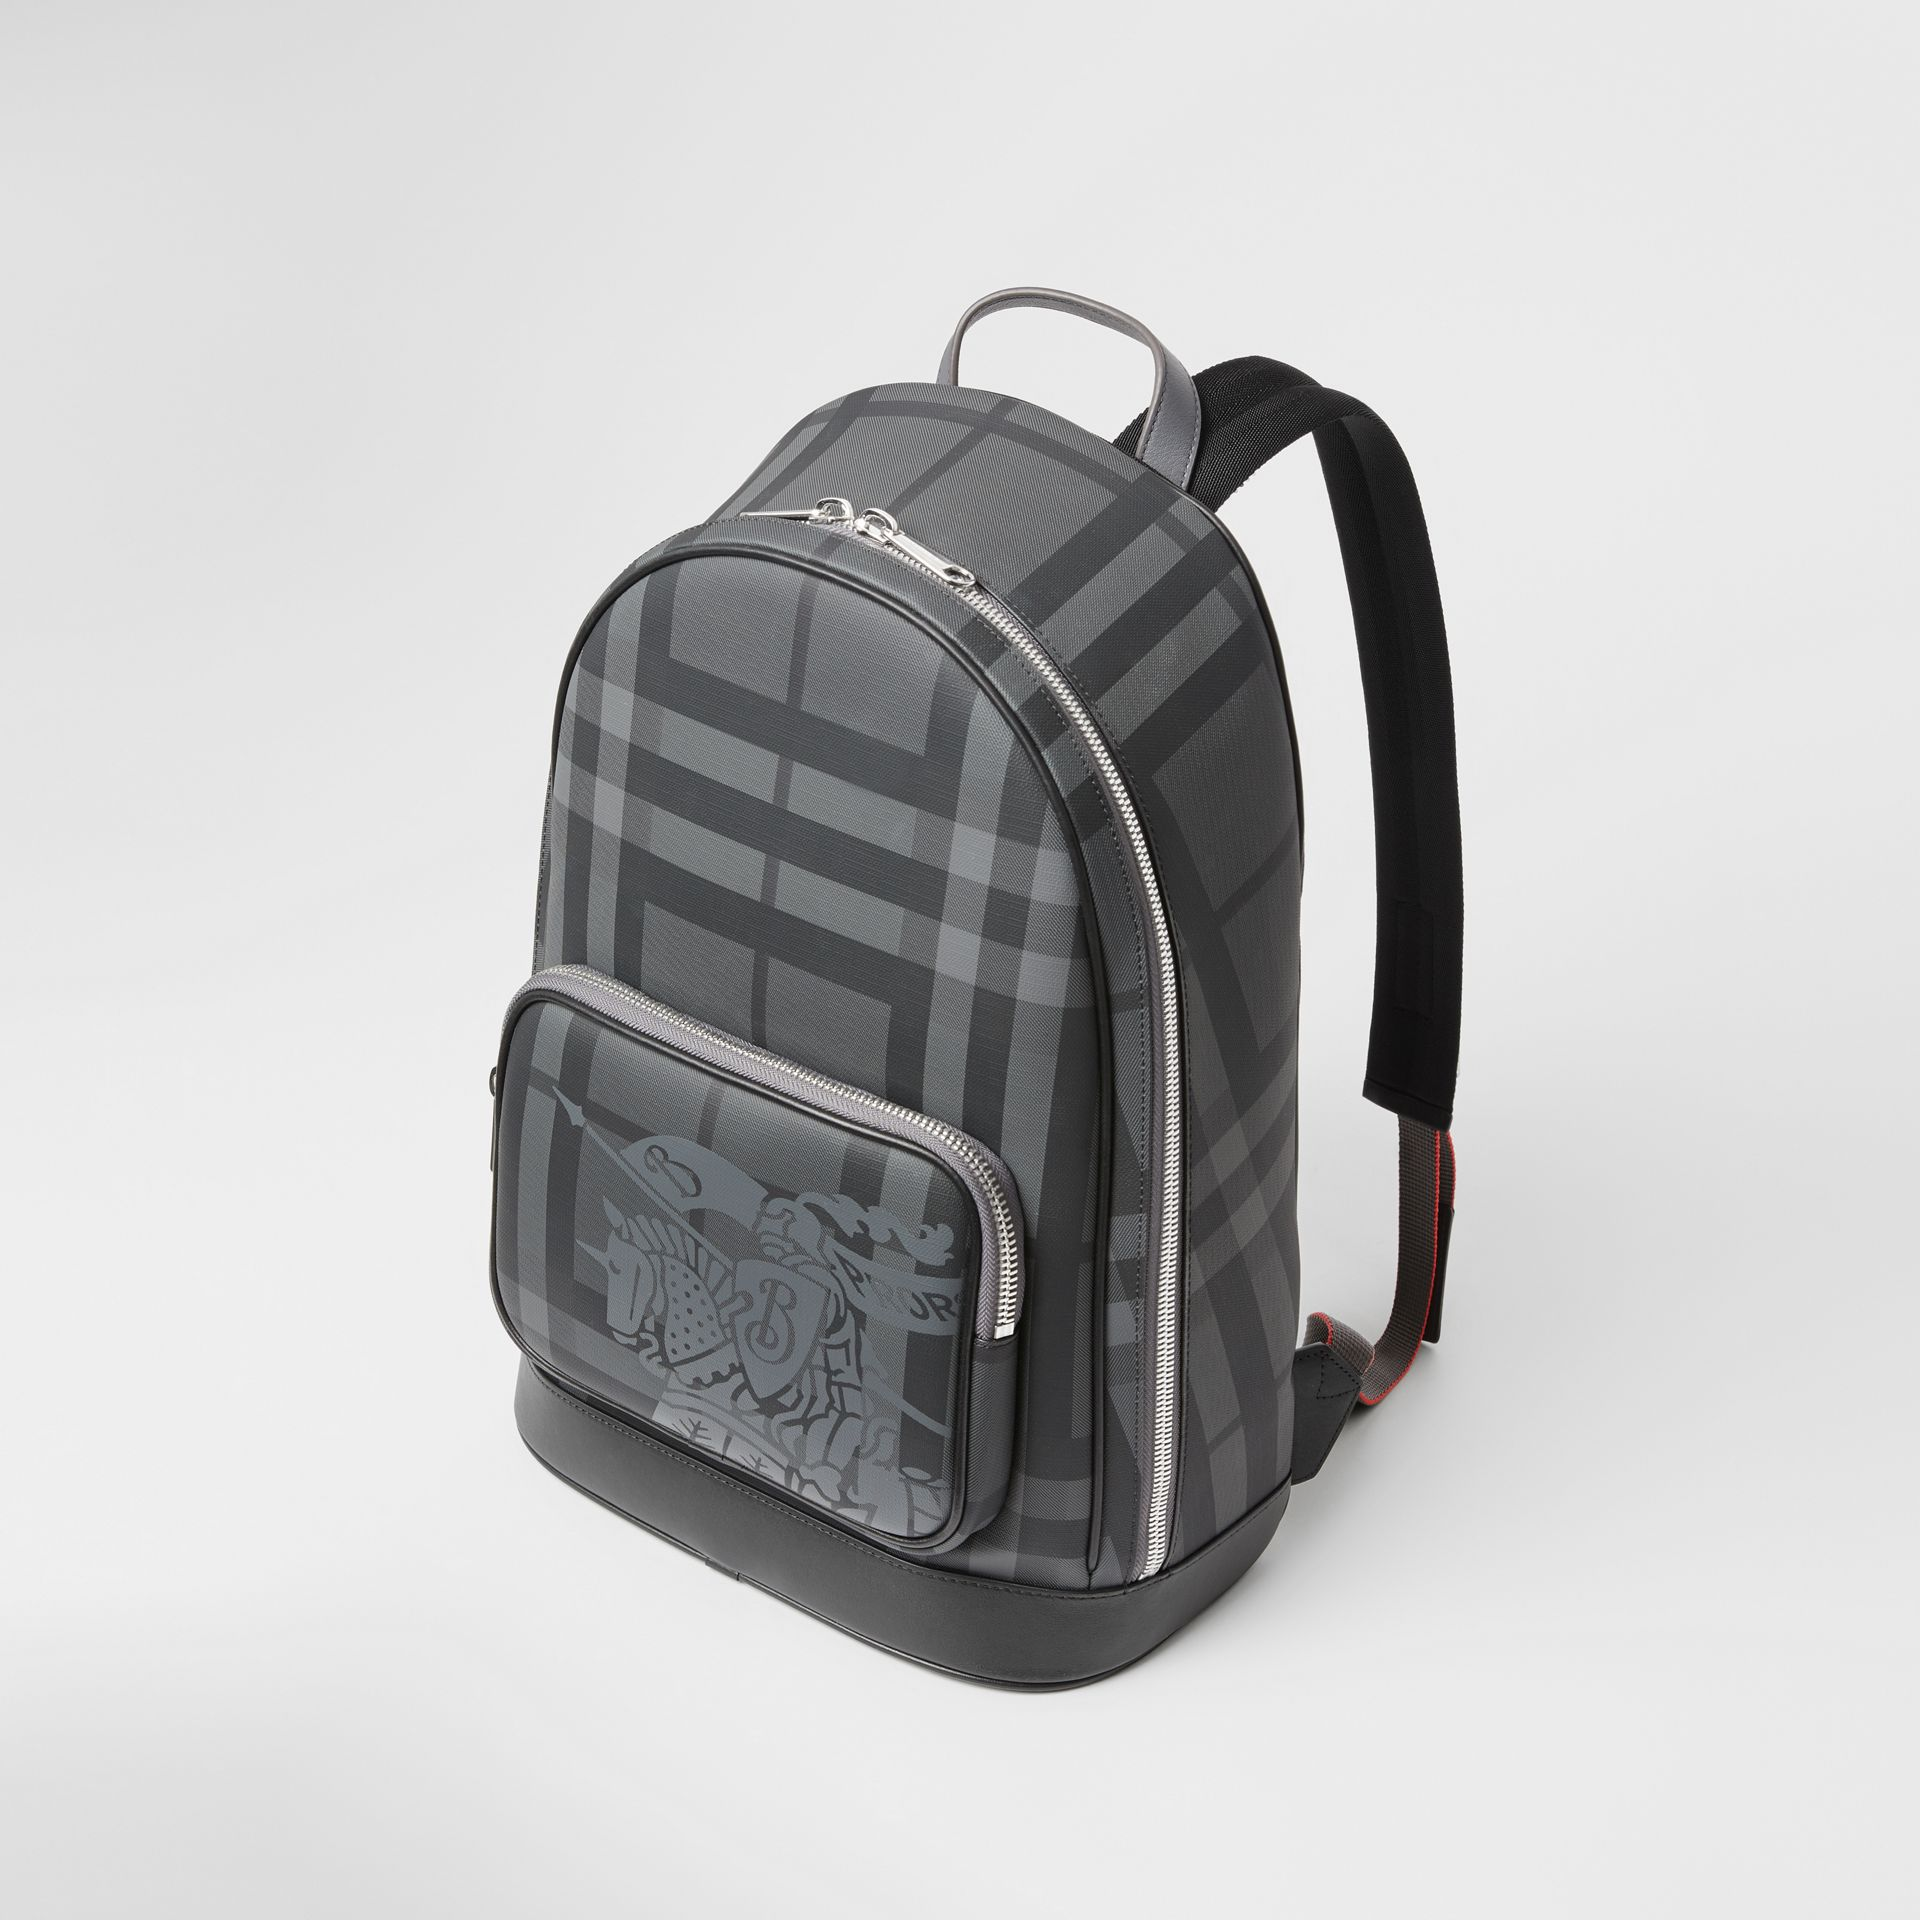 EKD London Check and Leather Backpack in Charcoal/black - Men | Burberry Singapore - gallery image 4